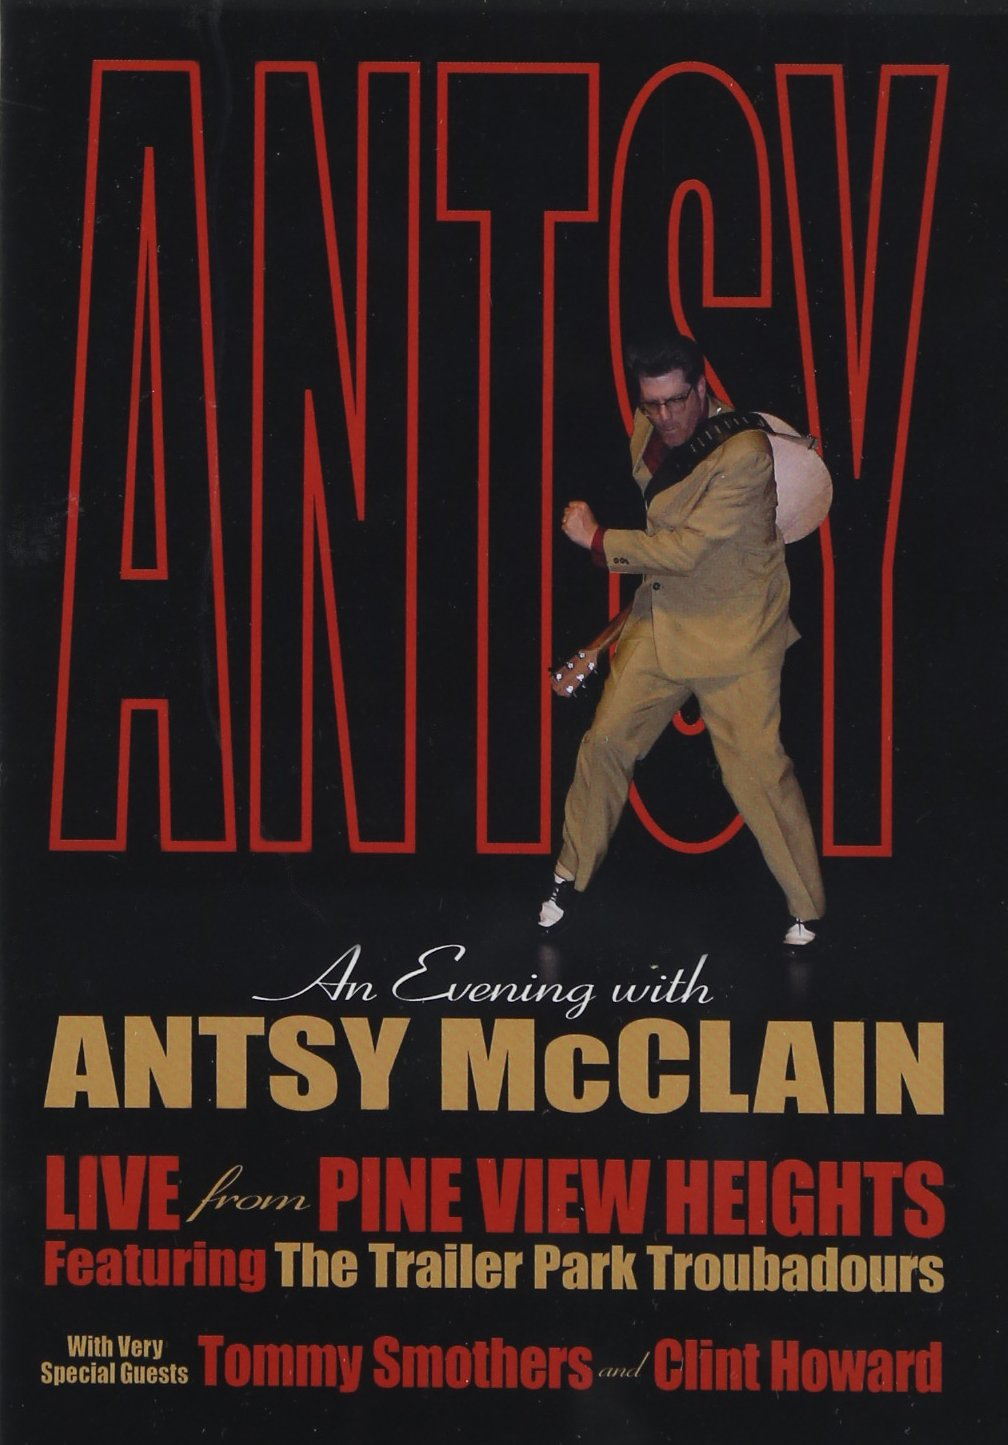 An Evening with Antsy McClain: Live from Pine View Heights - The Kitchen Table Tour